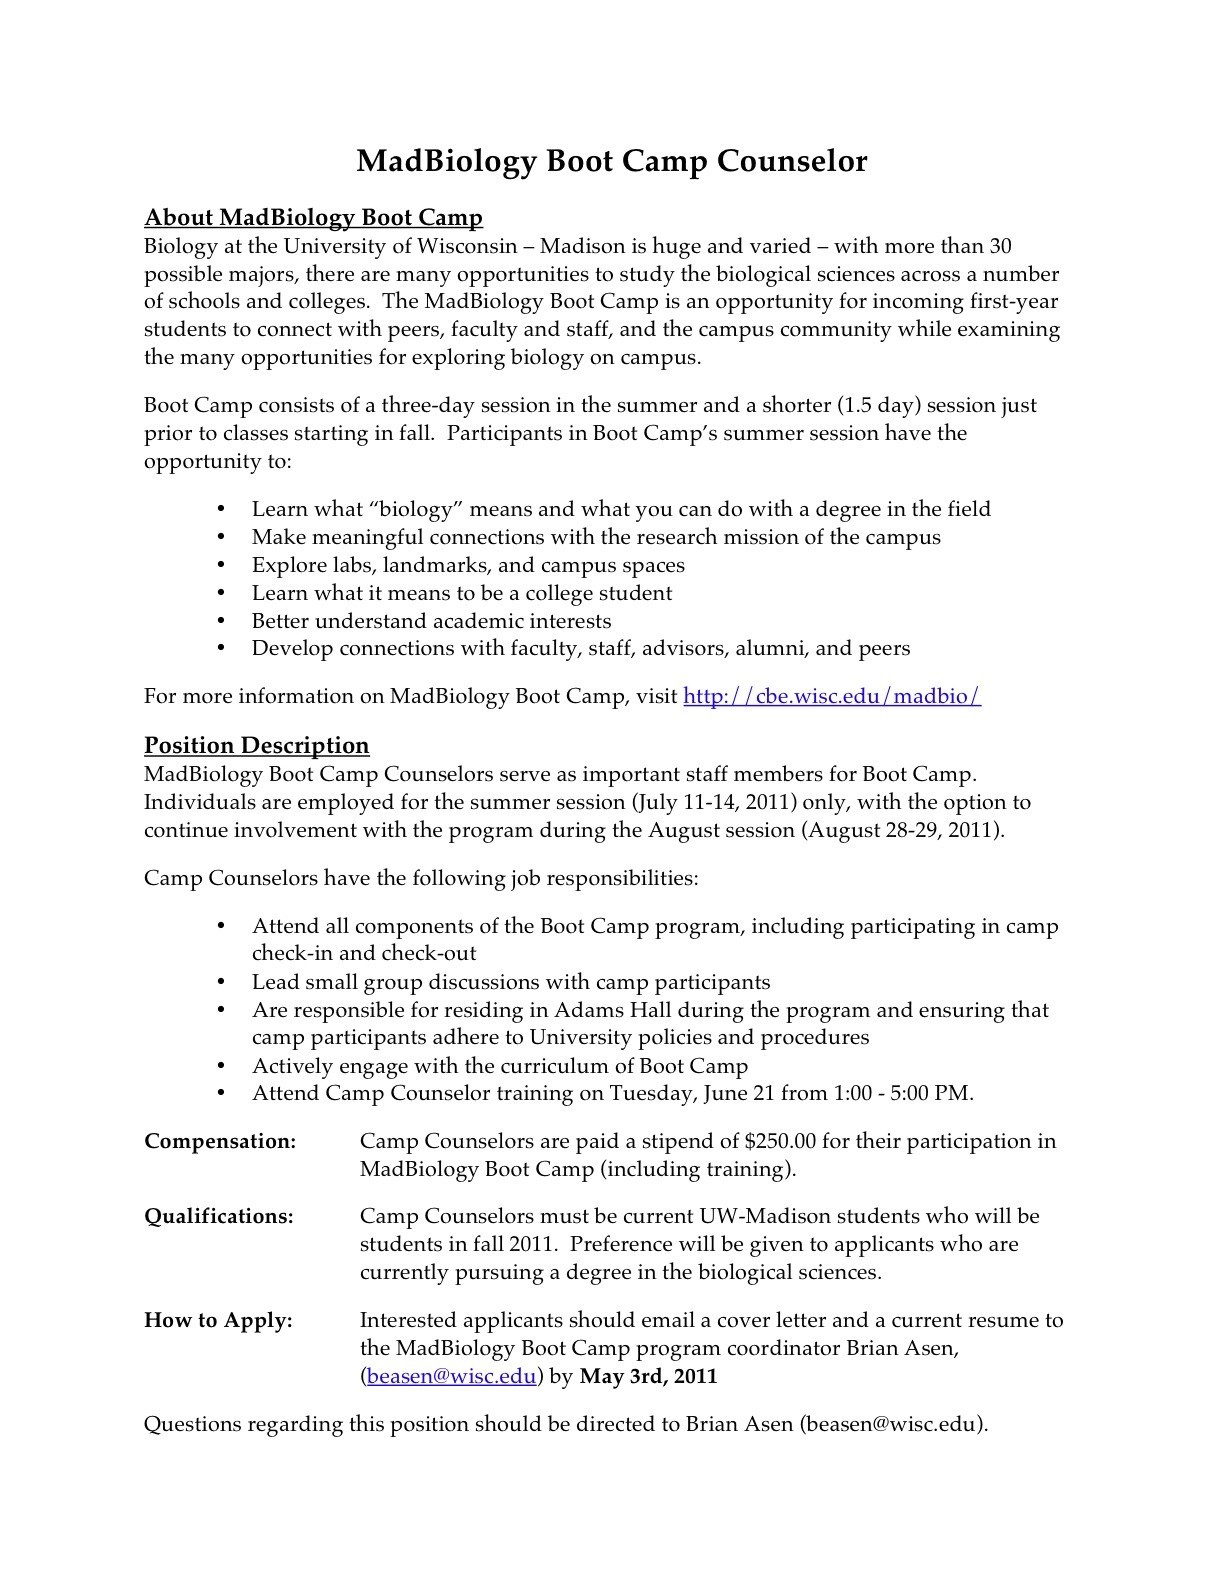 Camp Counselor Duties Resume - Camp Counselor Resume Inspirational Resume Examples for Youth